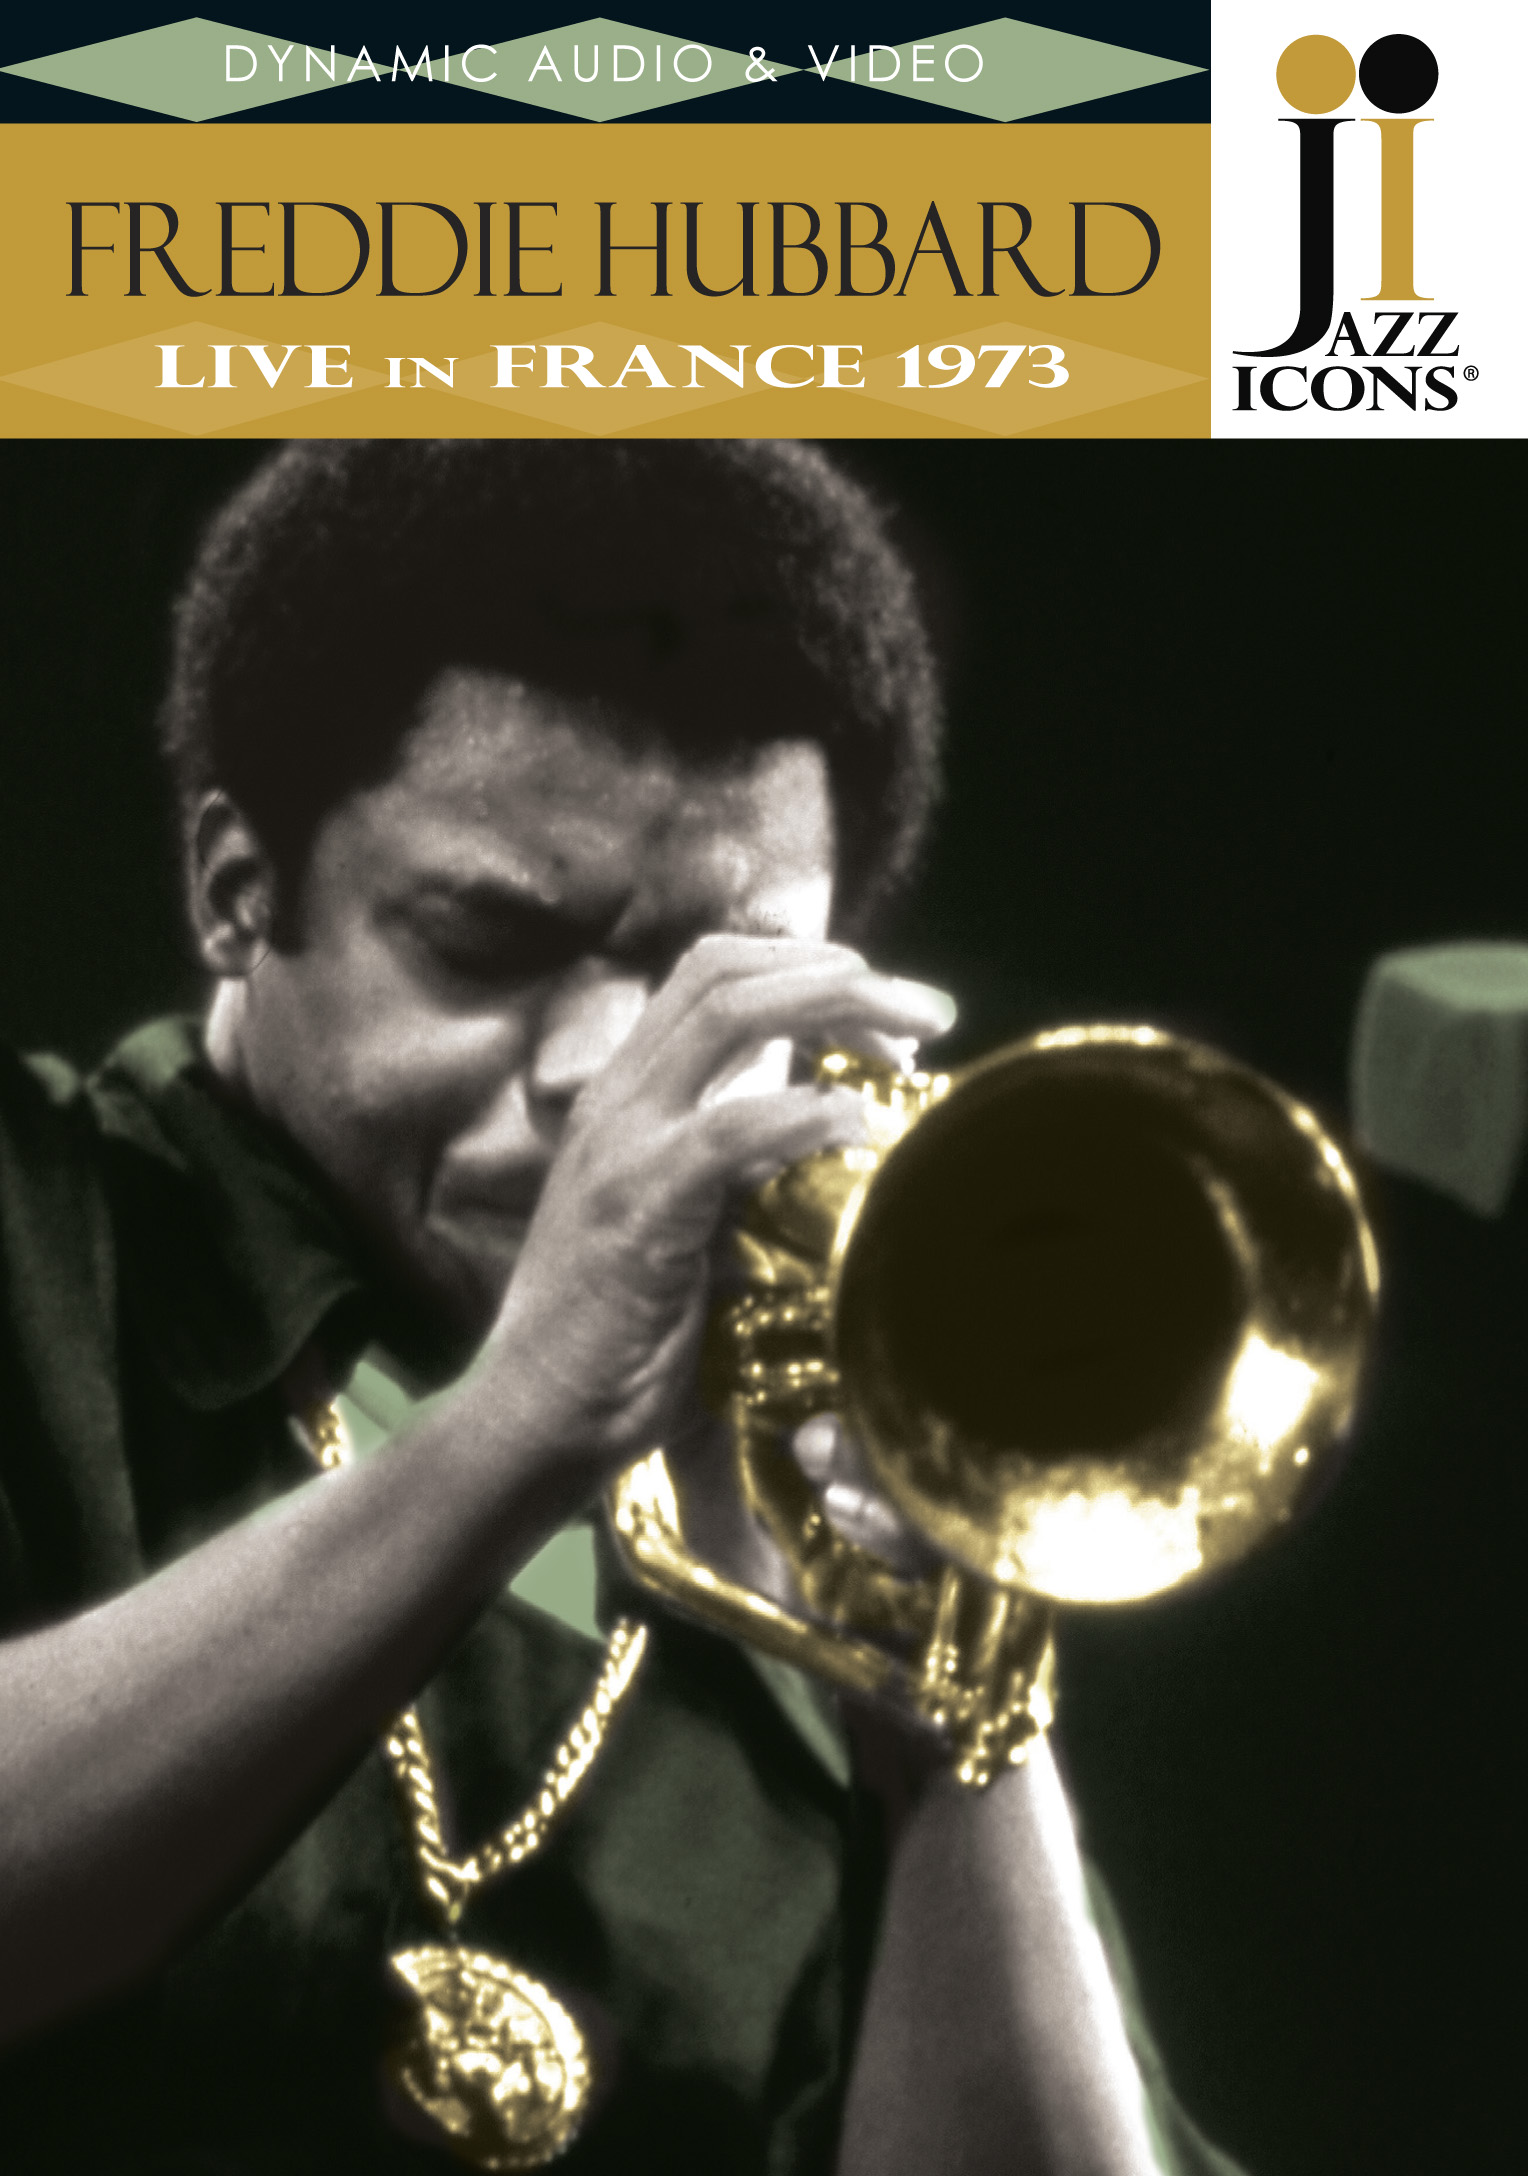 Jazz Icons: Freddie Hubbard - Live in France 1973